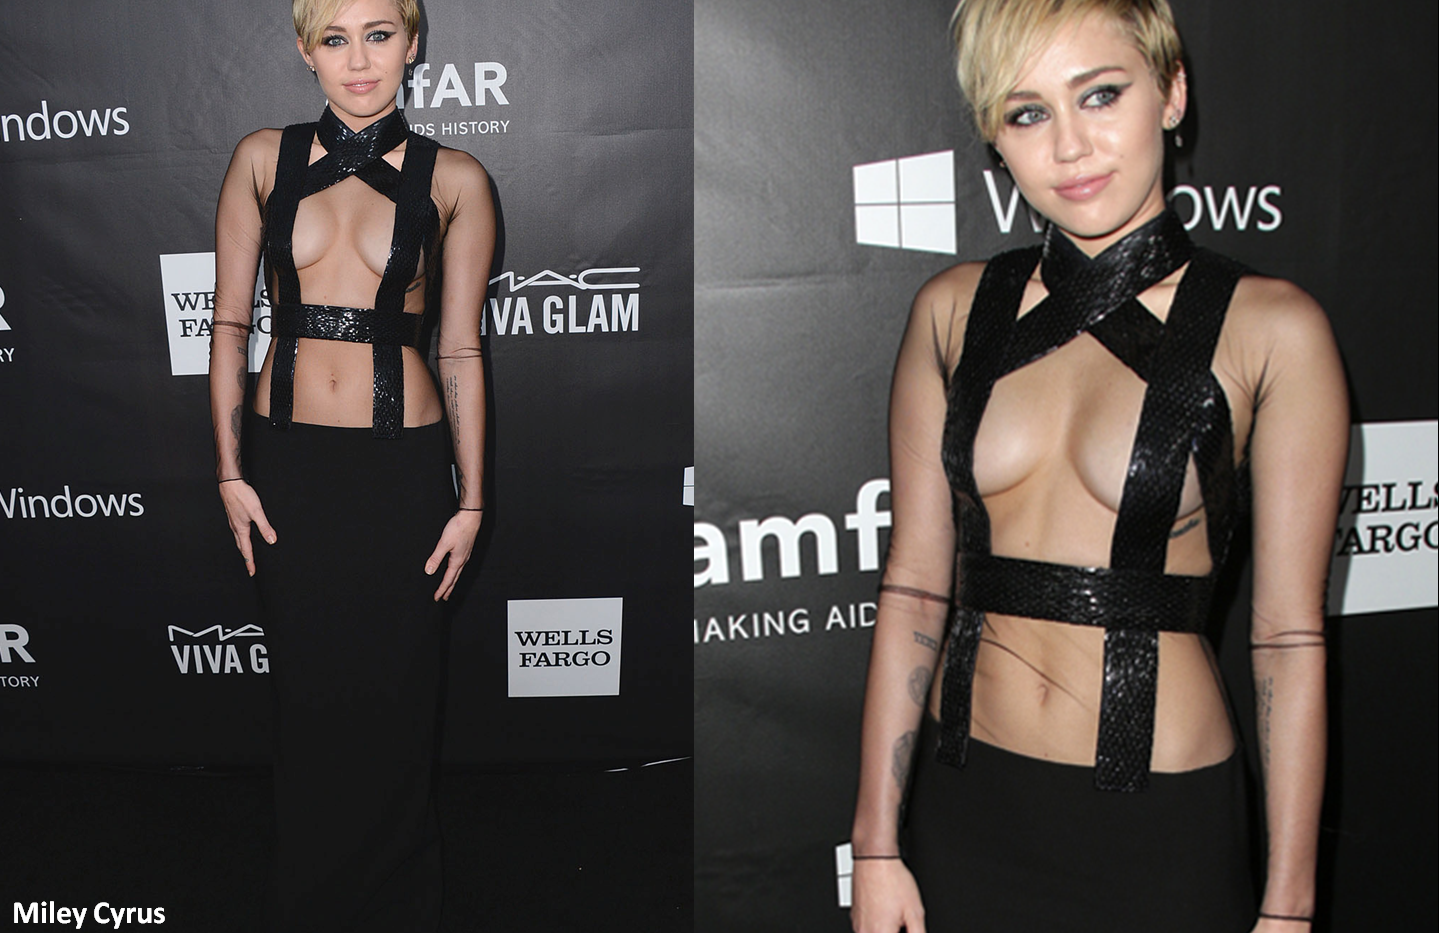 Miley Cyrus at the amFAR 2014 wearing lack dress - Project for TOM FORD - dressmaking - tailoring